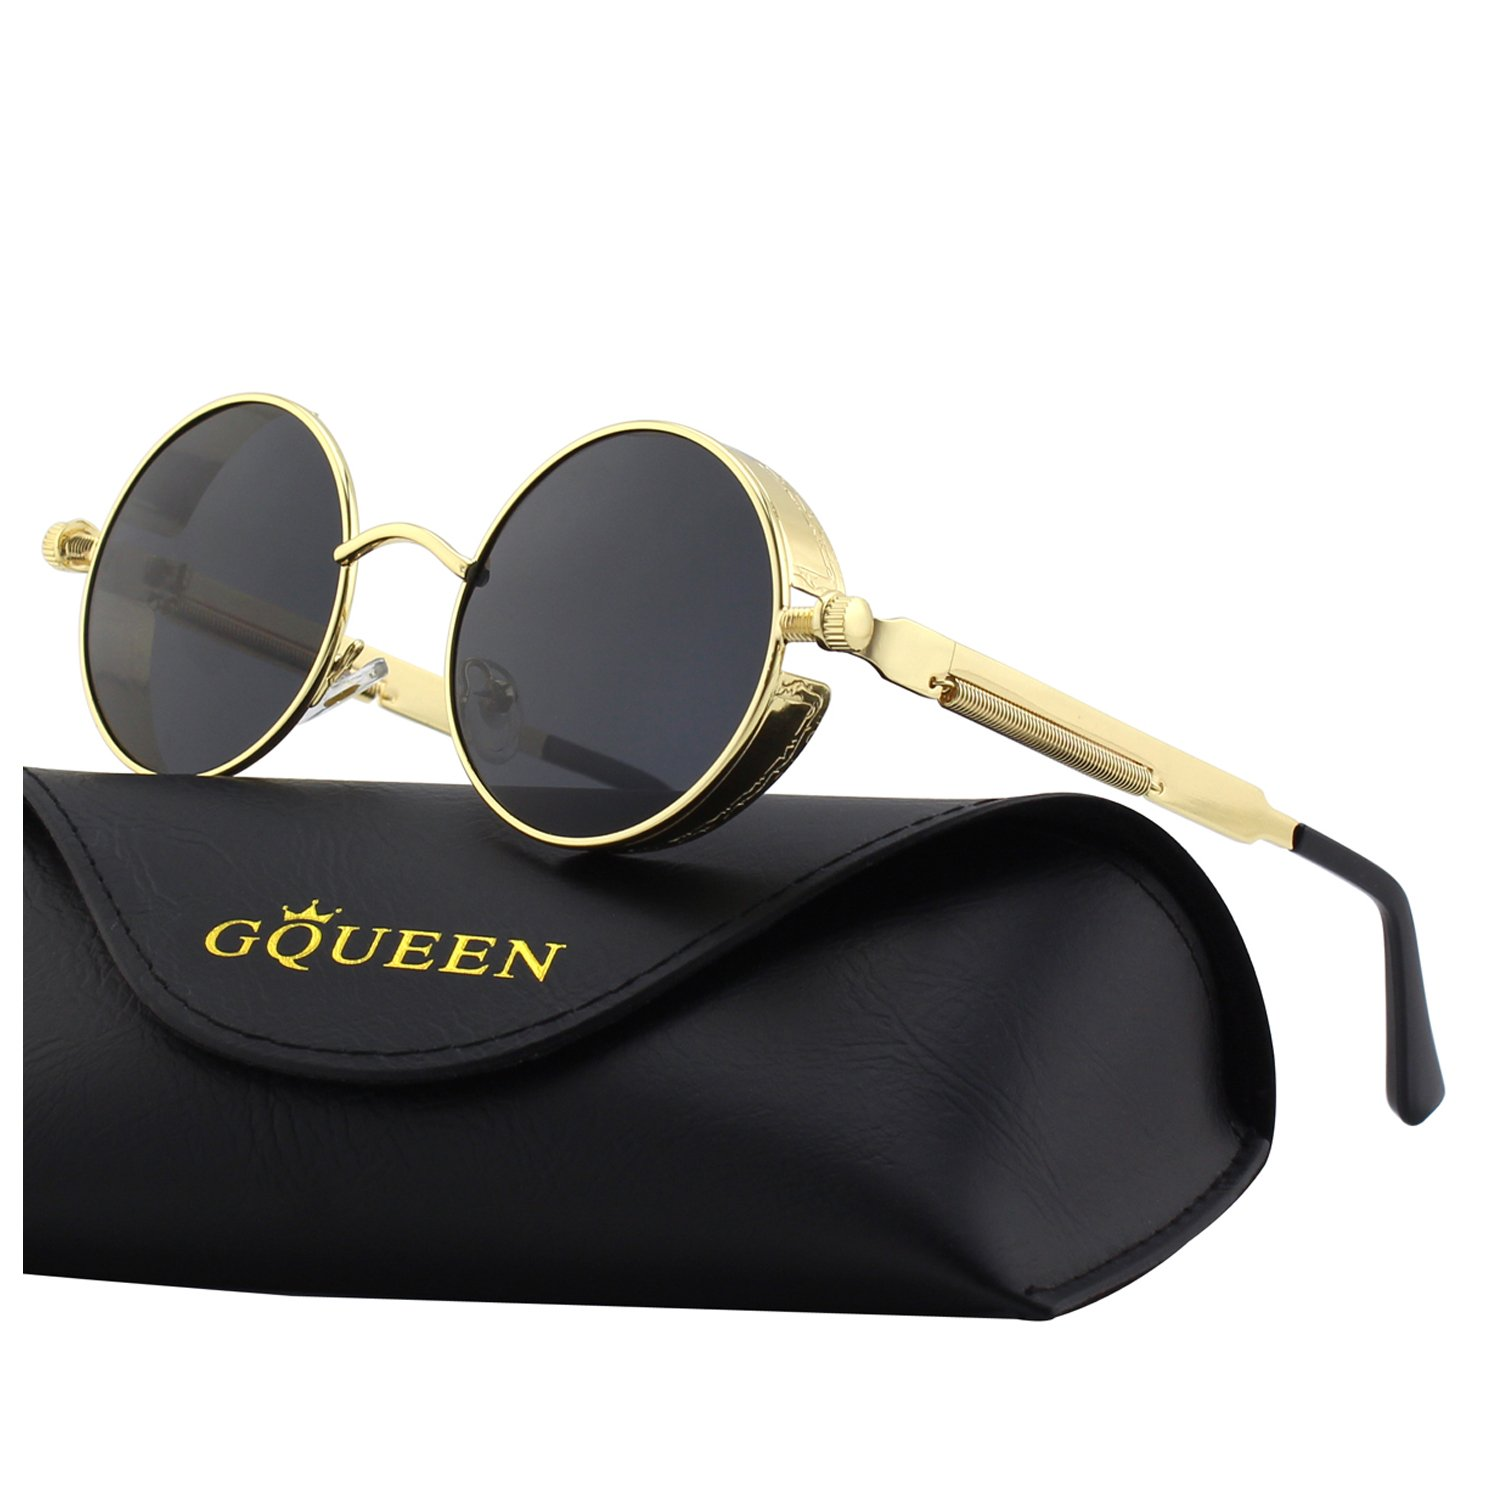 GQUEEN Retro Round Steampunk Polarized Sunglasses MTS2 by GQUEEN